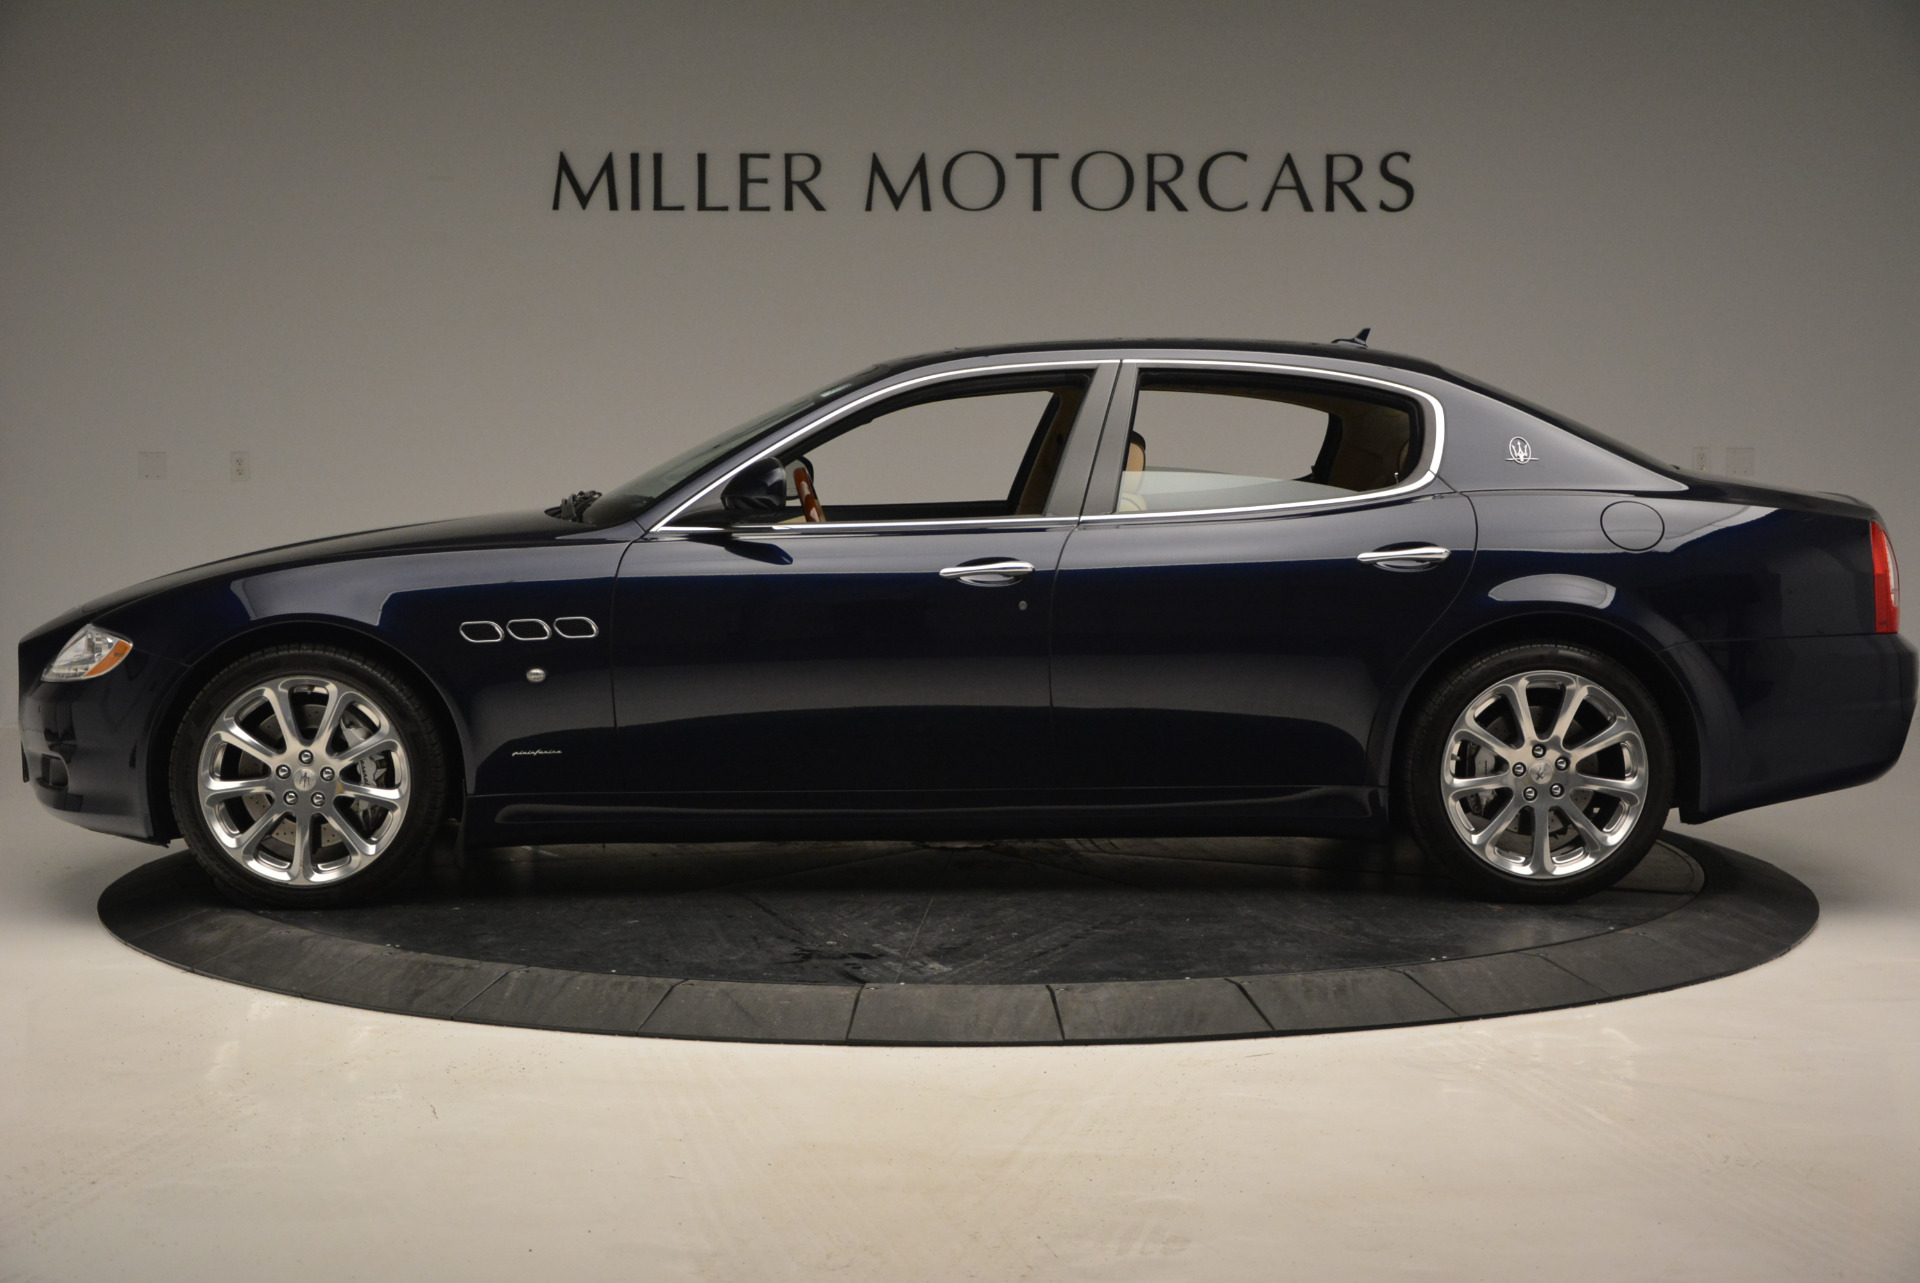 Used 2010 Maserati Quattroporte S For Sale In Greenwich, CT 795_p3